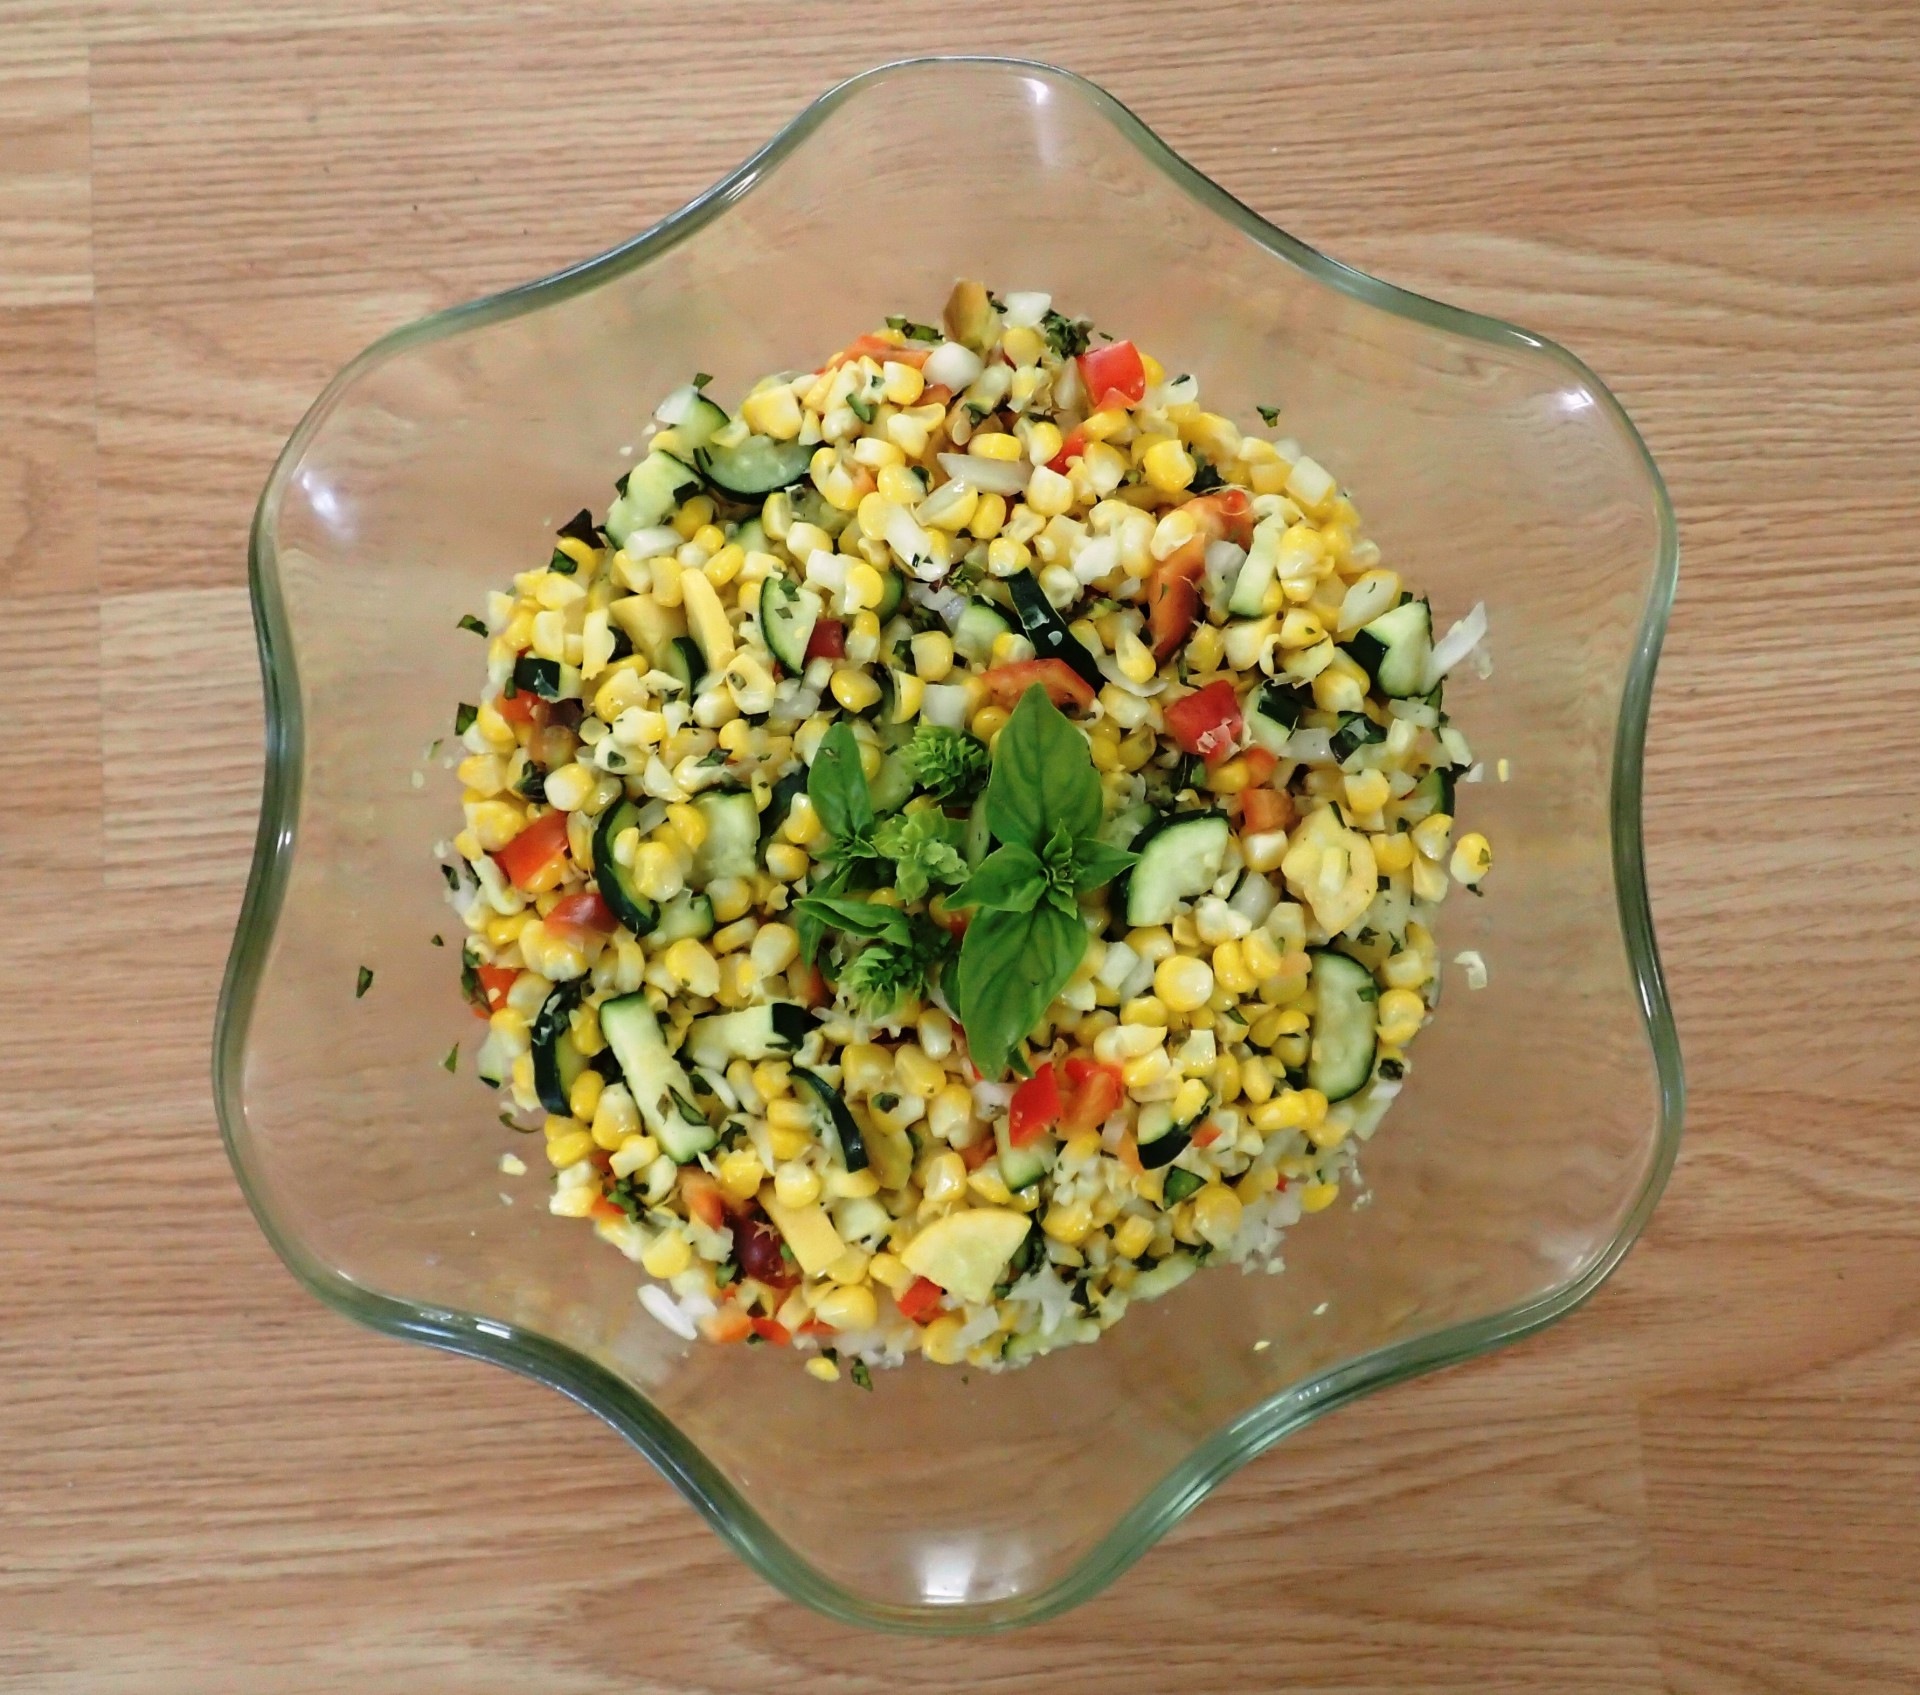 Homemade Farmer's Market Corn Salad